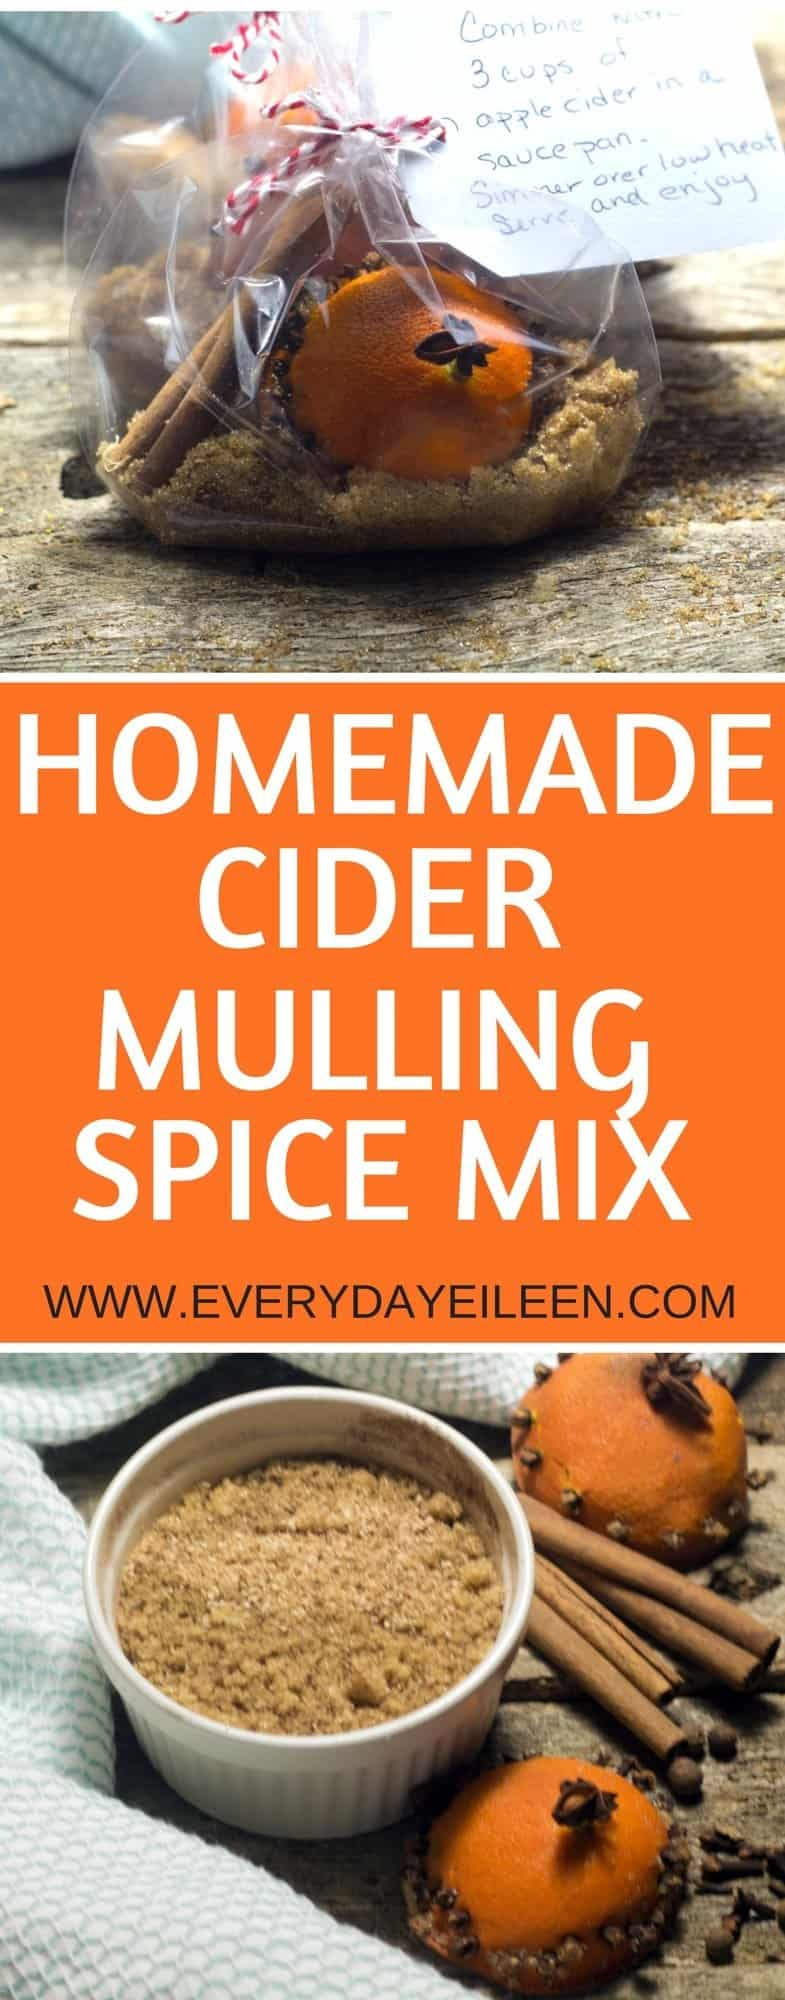 Pin this Homemade Mulling Cider Spice Mix to make later HERE